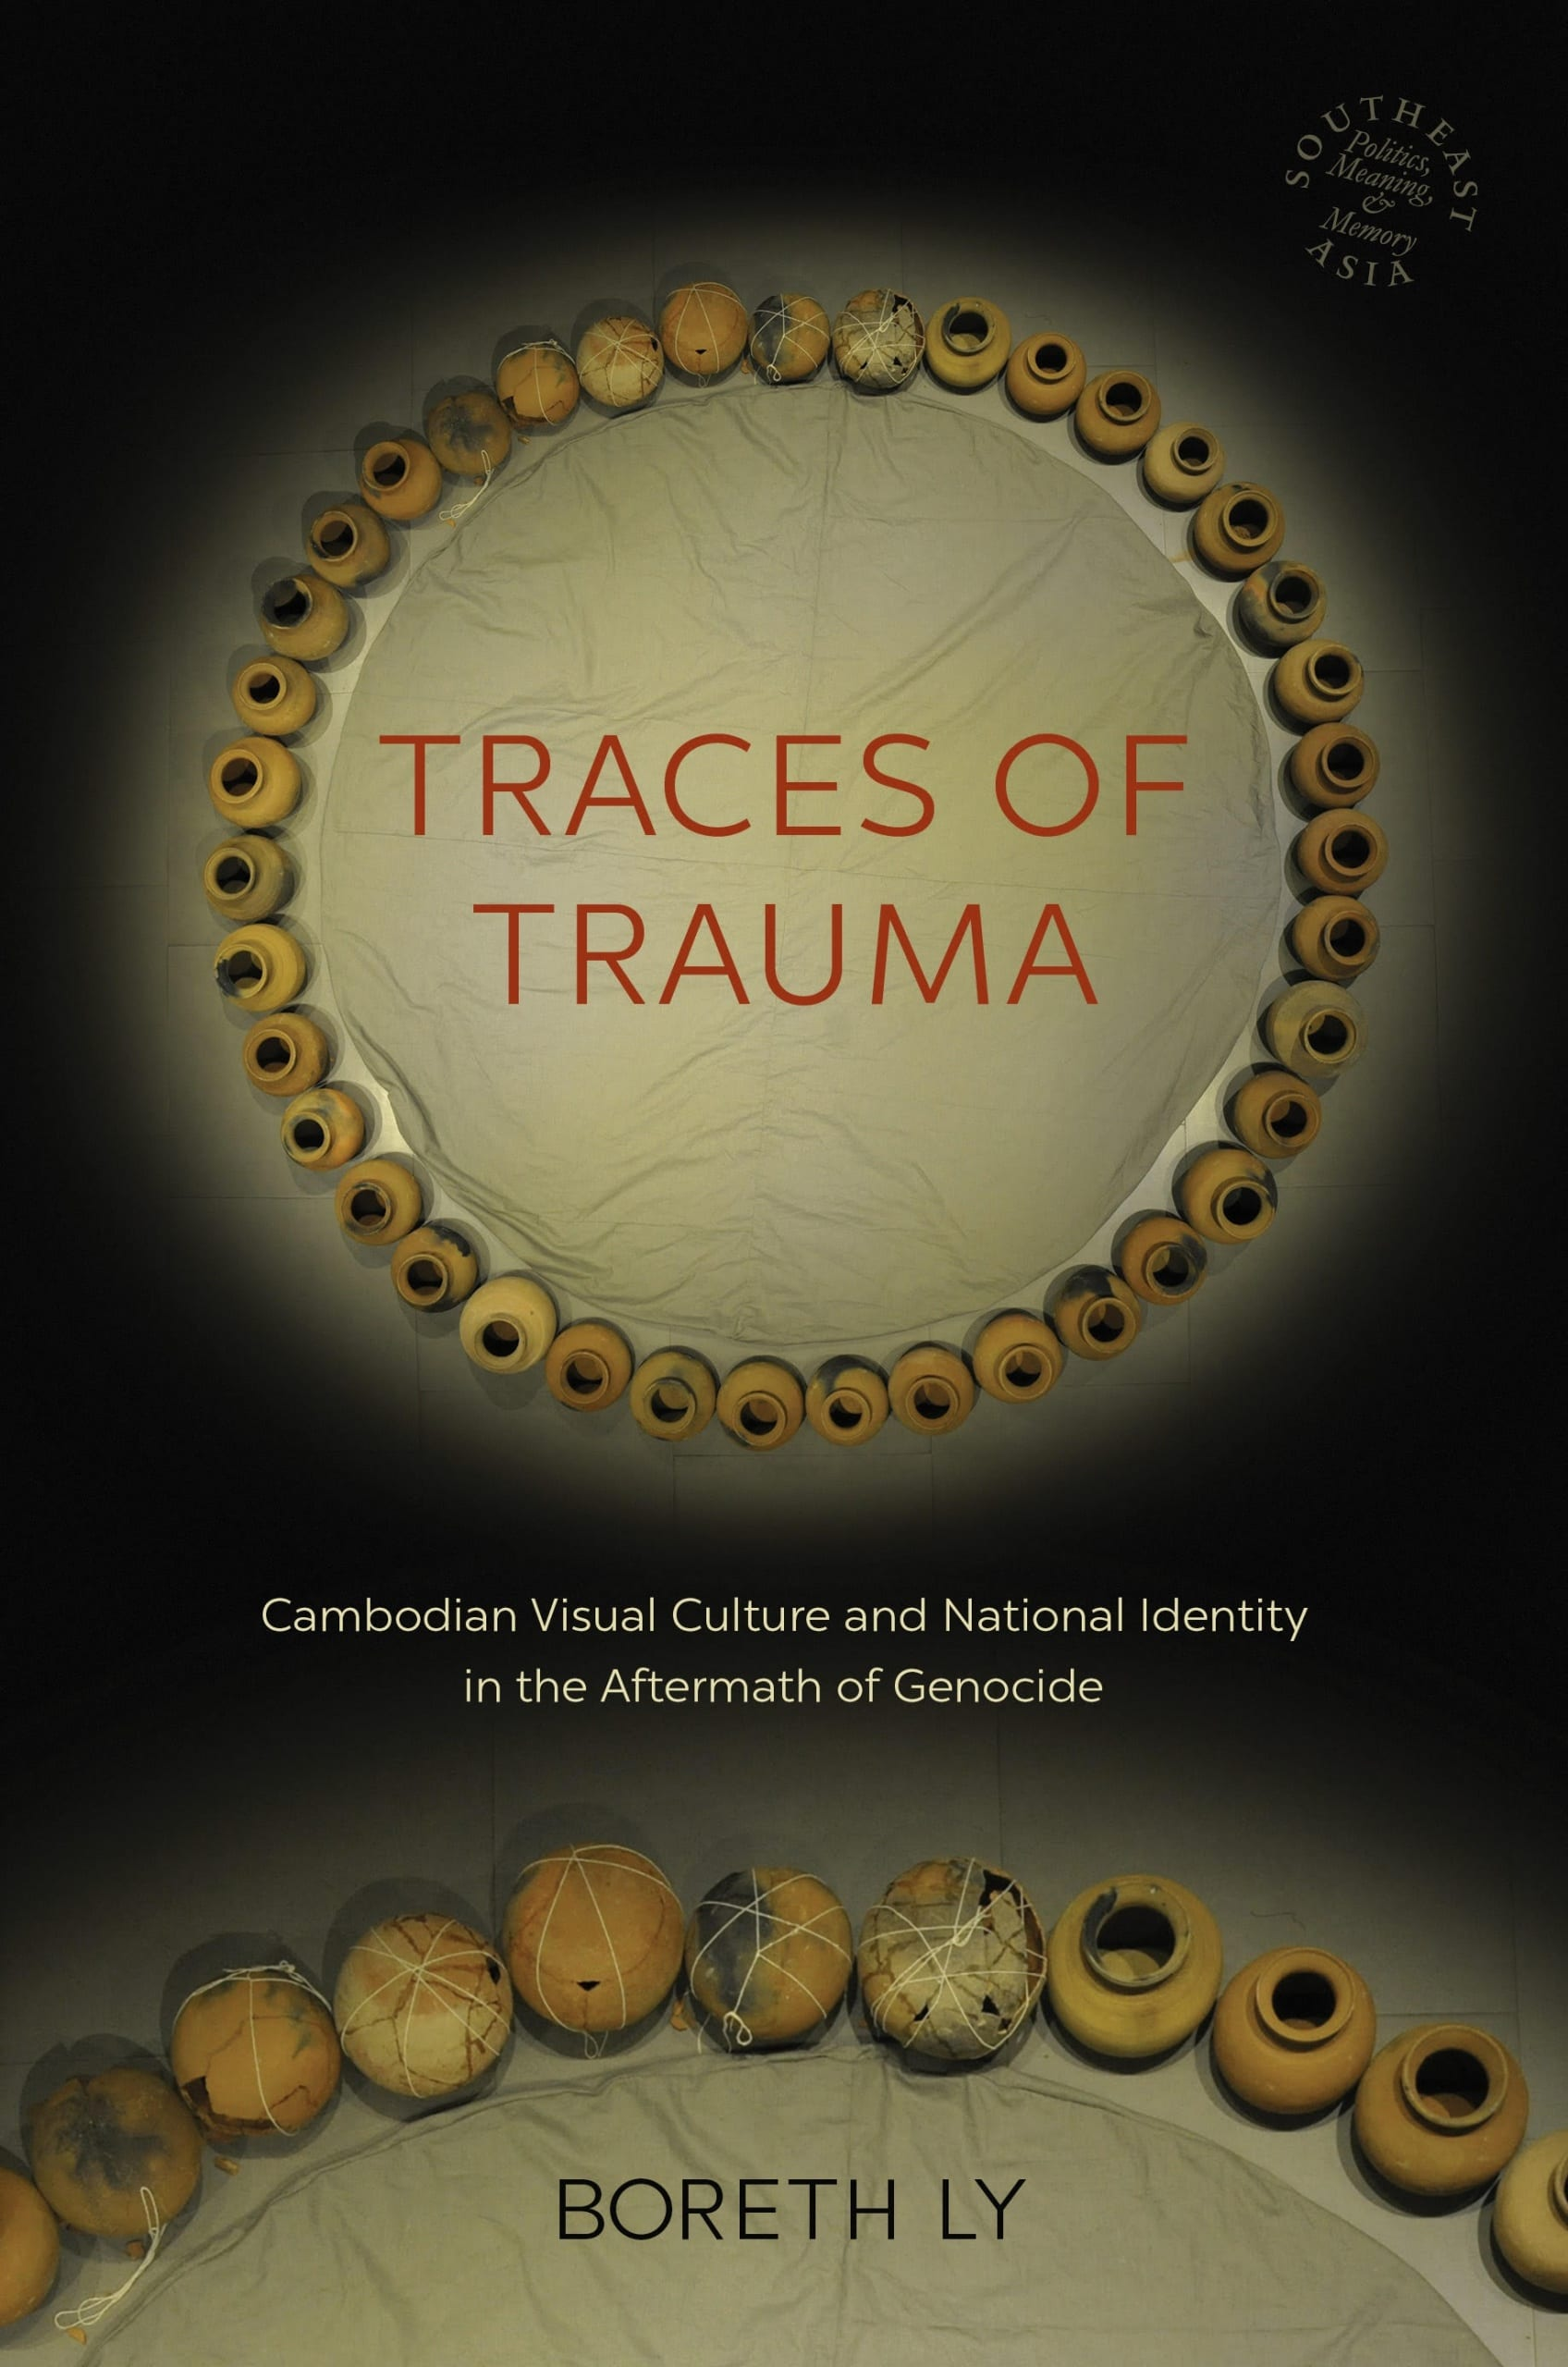 Cover of book by Boreth Ly featuring a color photograph of forty clay pots arranged in a circle. Situated in the middle of the circle is the book's title written in red, Traces of Trauma: Cambodian Visual Culture and National Identity in the Aftermath of Genocide.